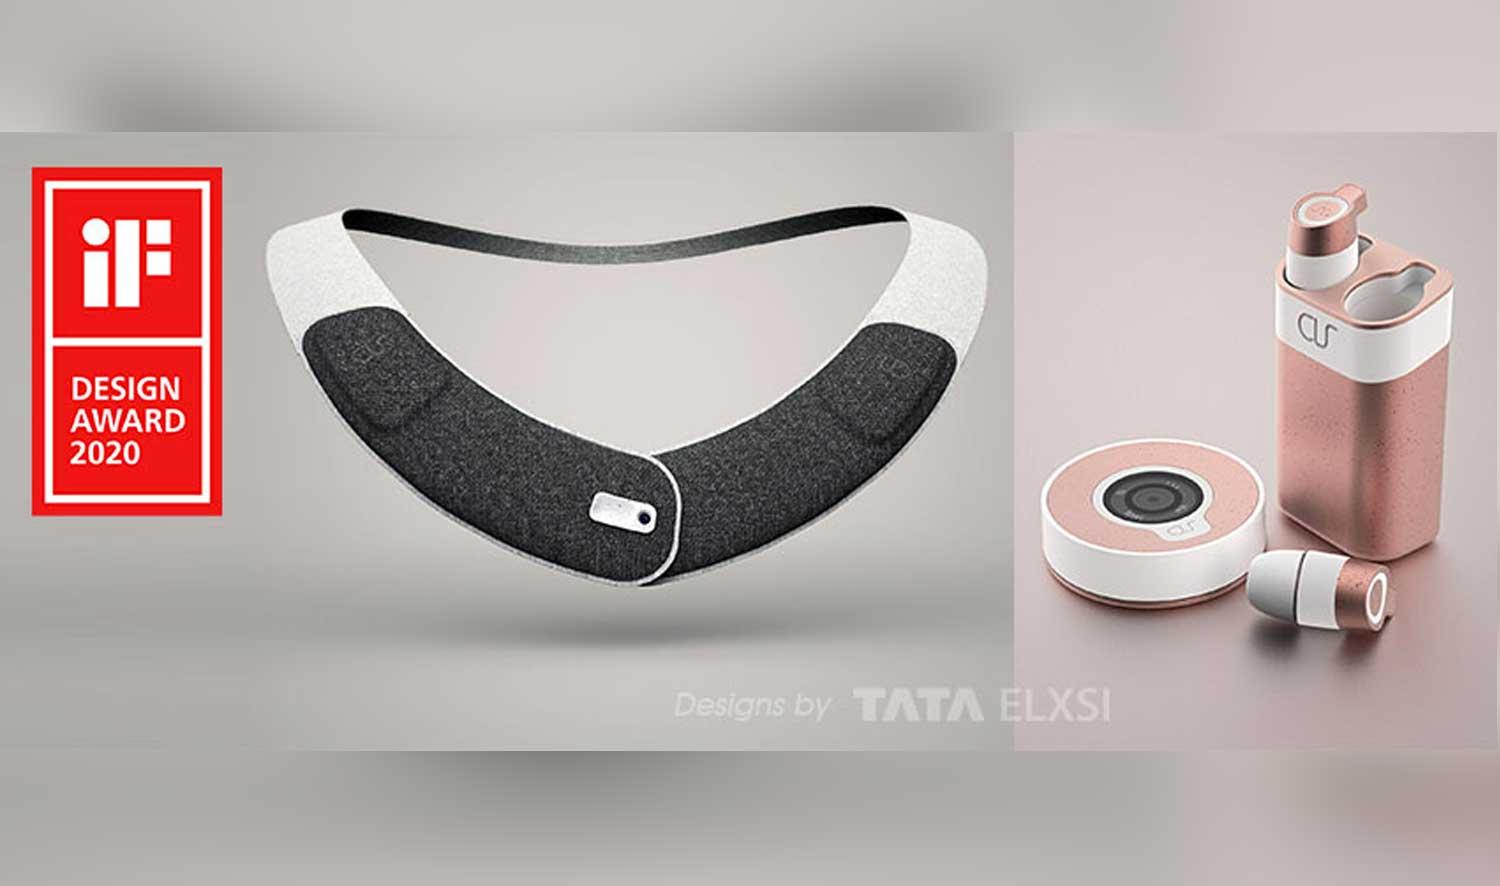 Tata Elxsi's Smart Assistive Wearable Wins International iF Design Award